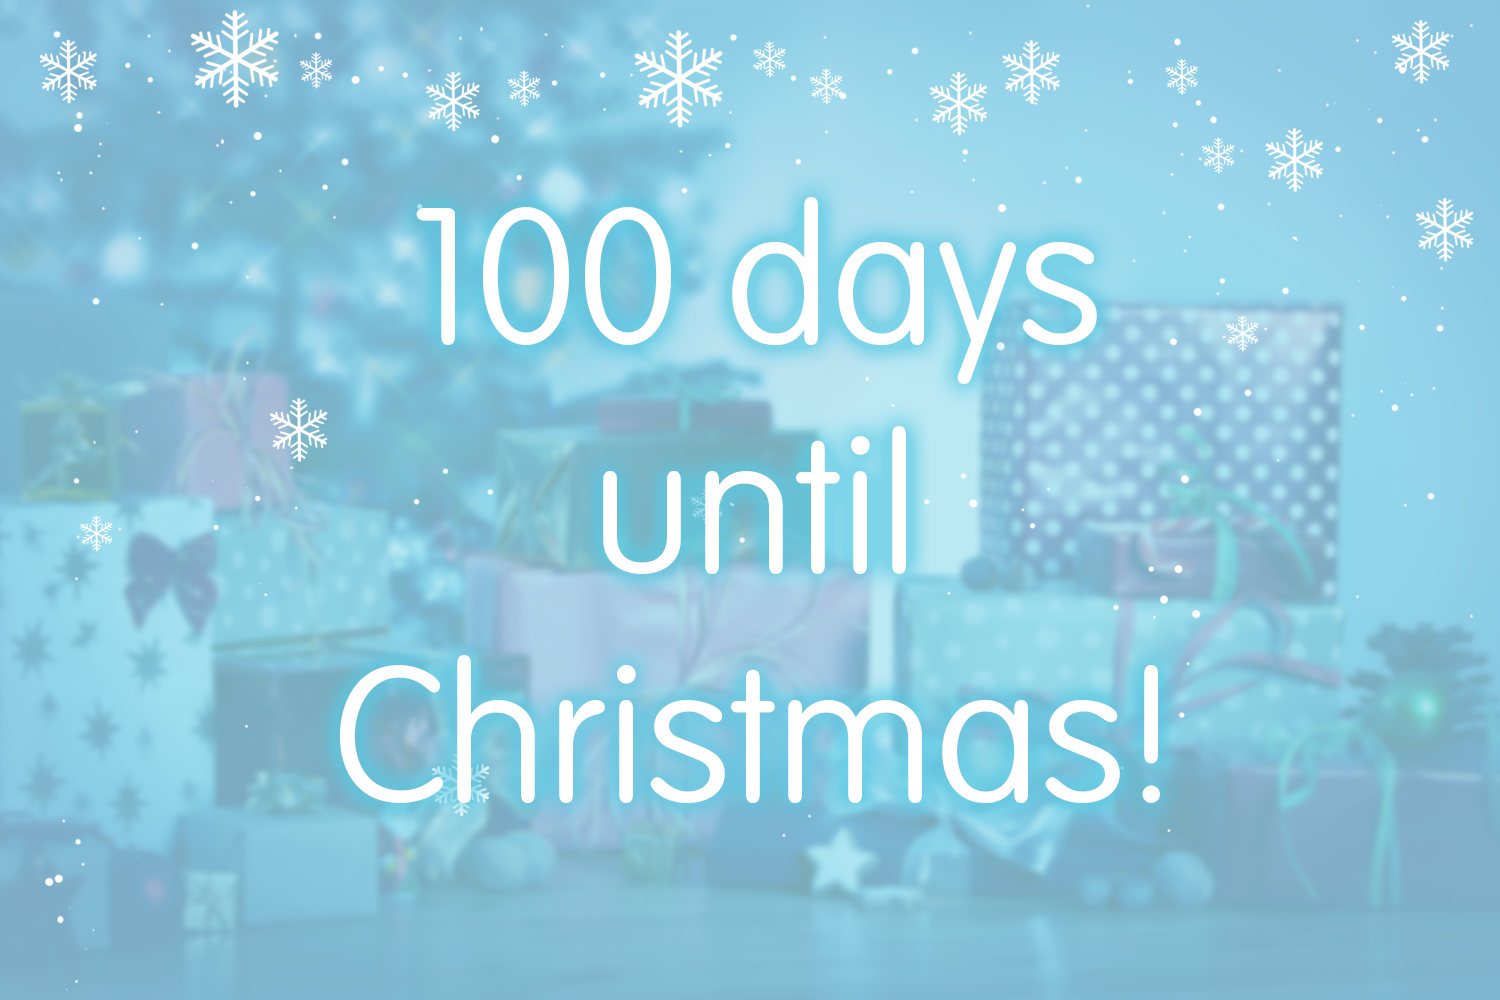 Only 100 days until Christmas